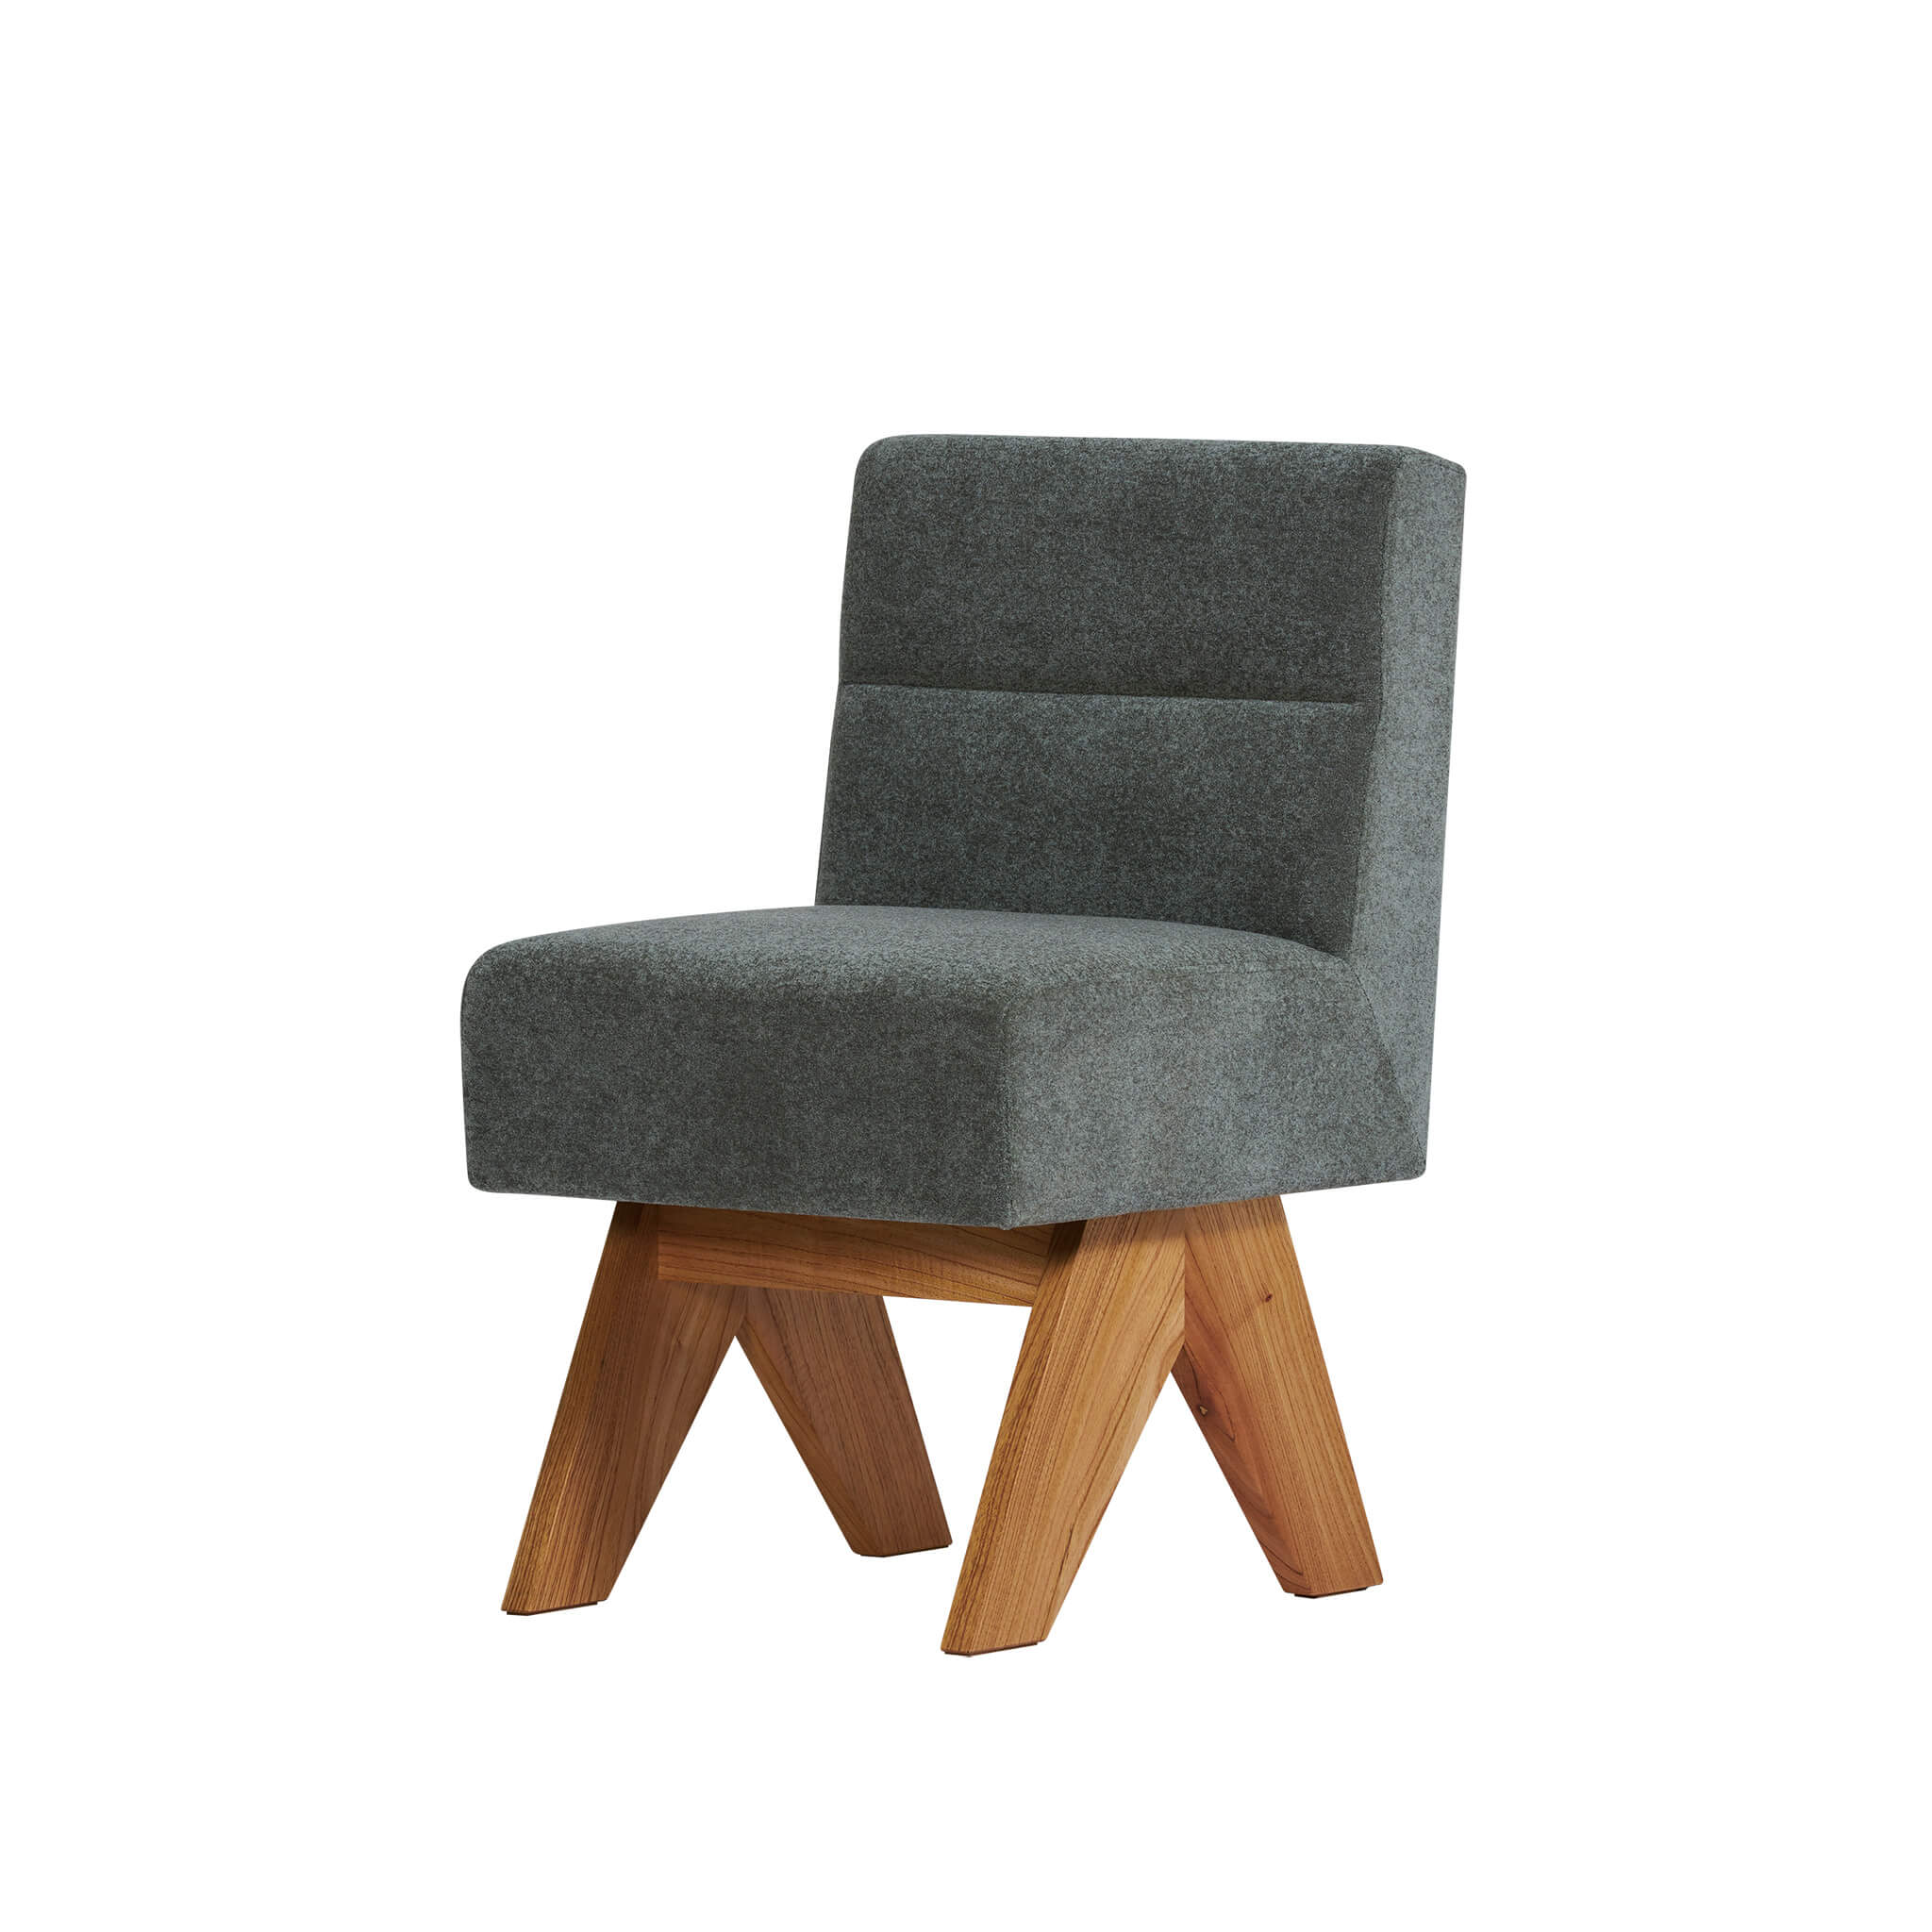 a-frame side chair